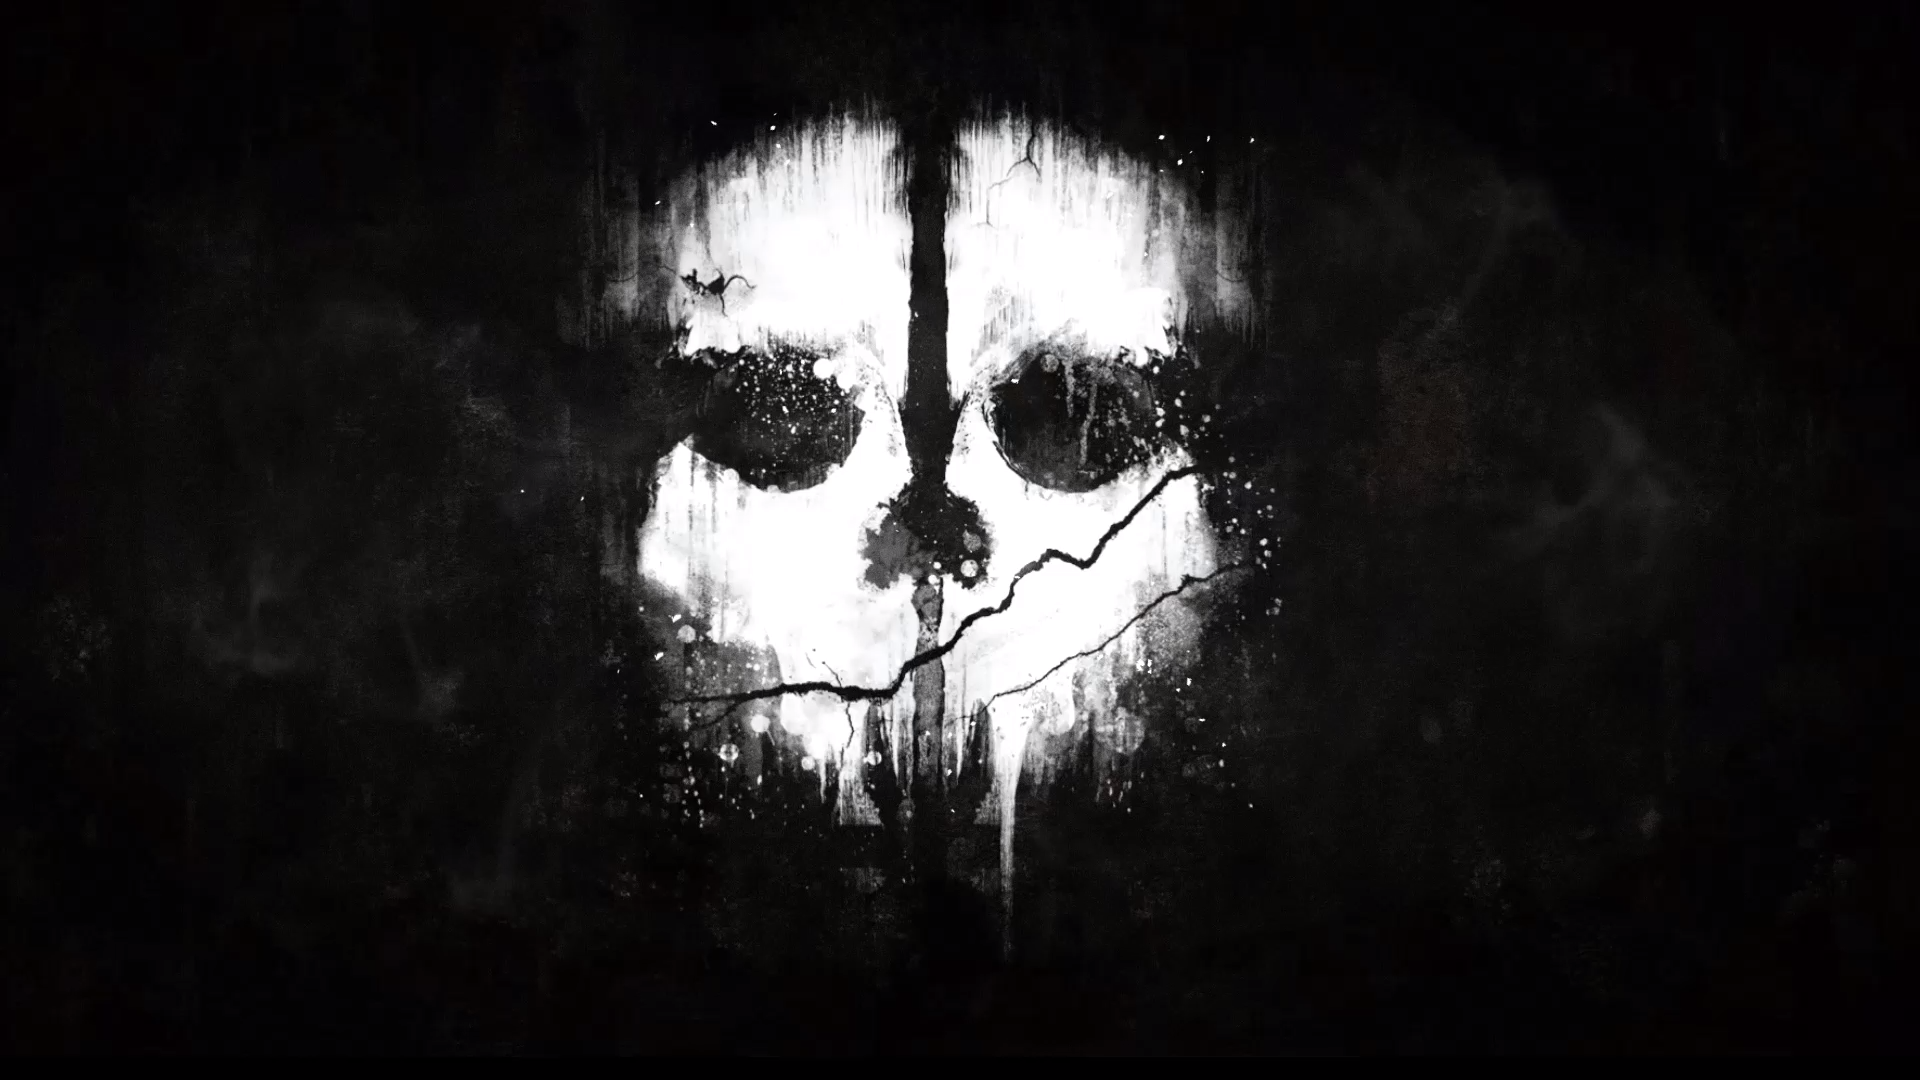 Call Of Duty Ghosts Gaming Background Call Of Duty Ghosts Gaming Wallpaper Awesome Wallpaper Engine Wallpapers Para Pc Ilustracoes Graficas Logotipo Redondo